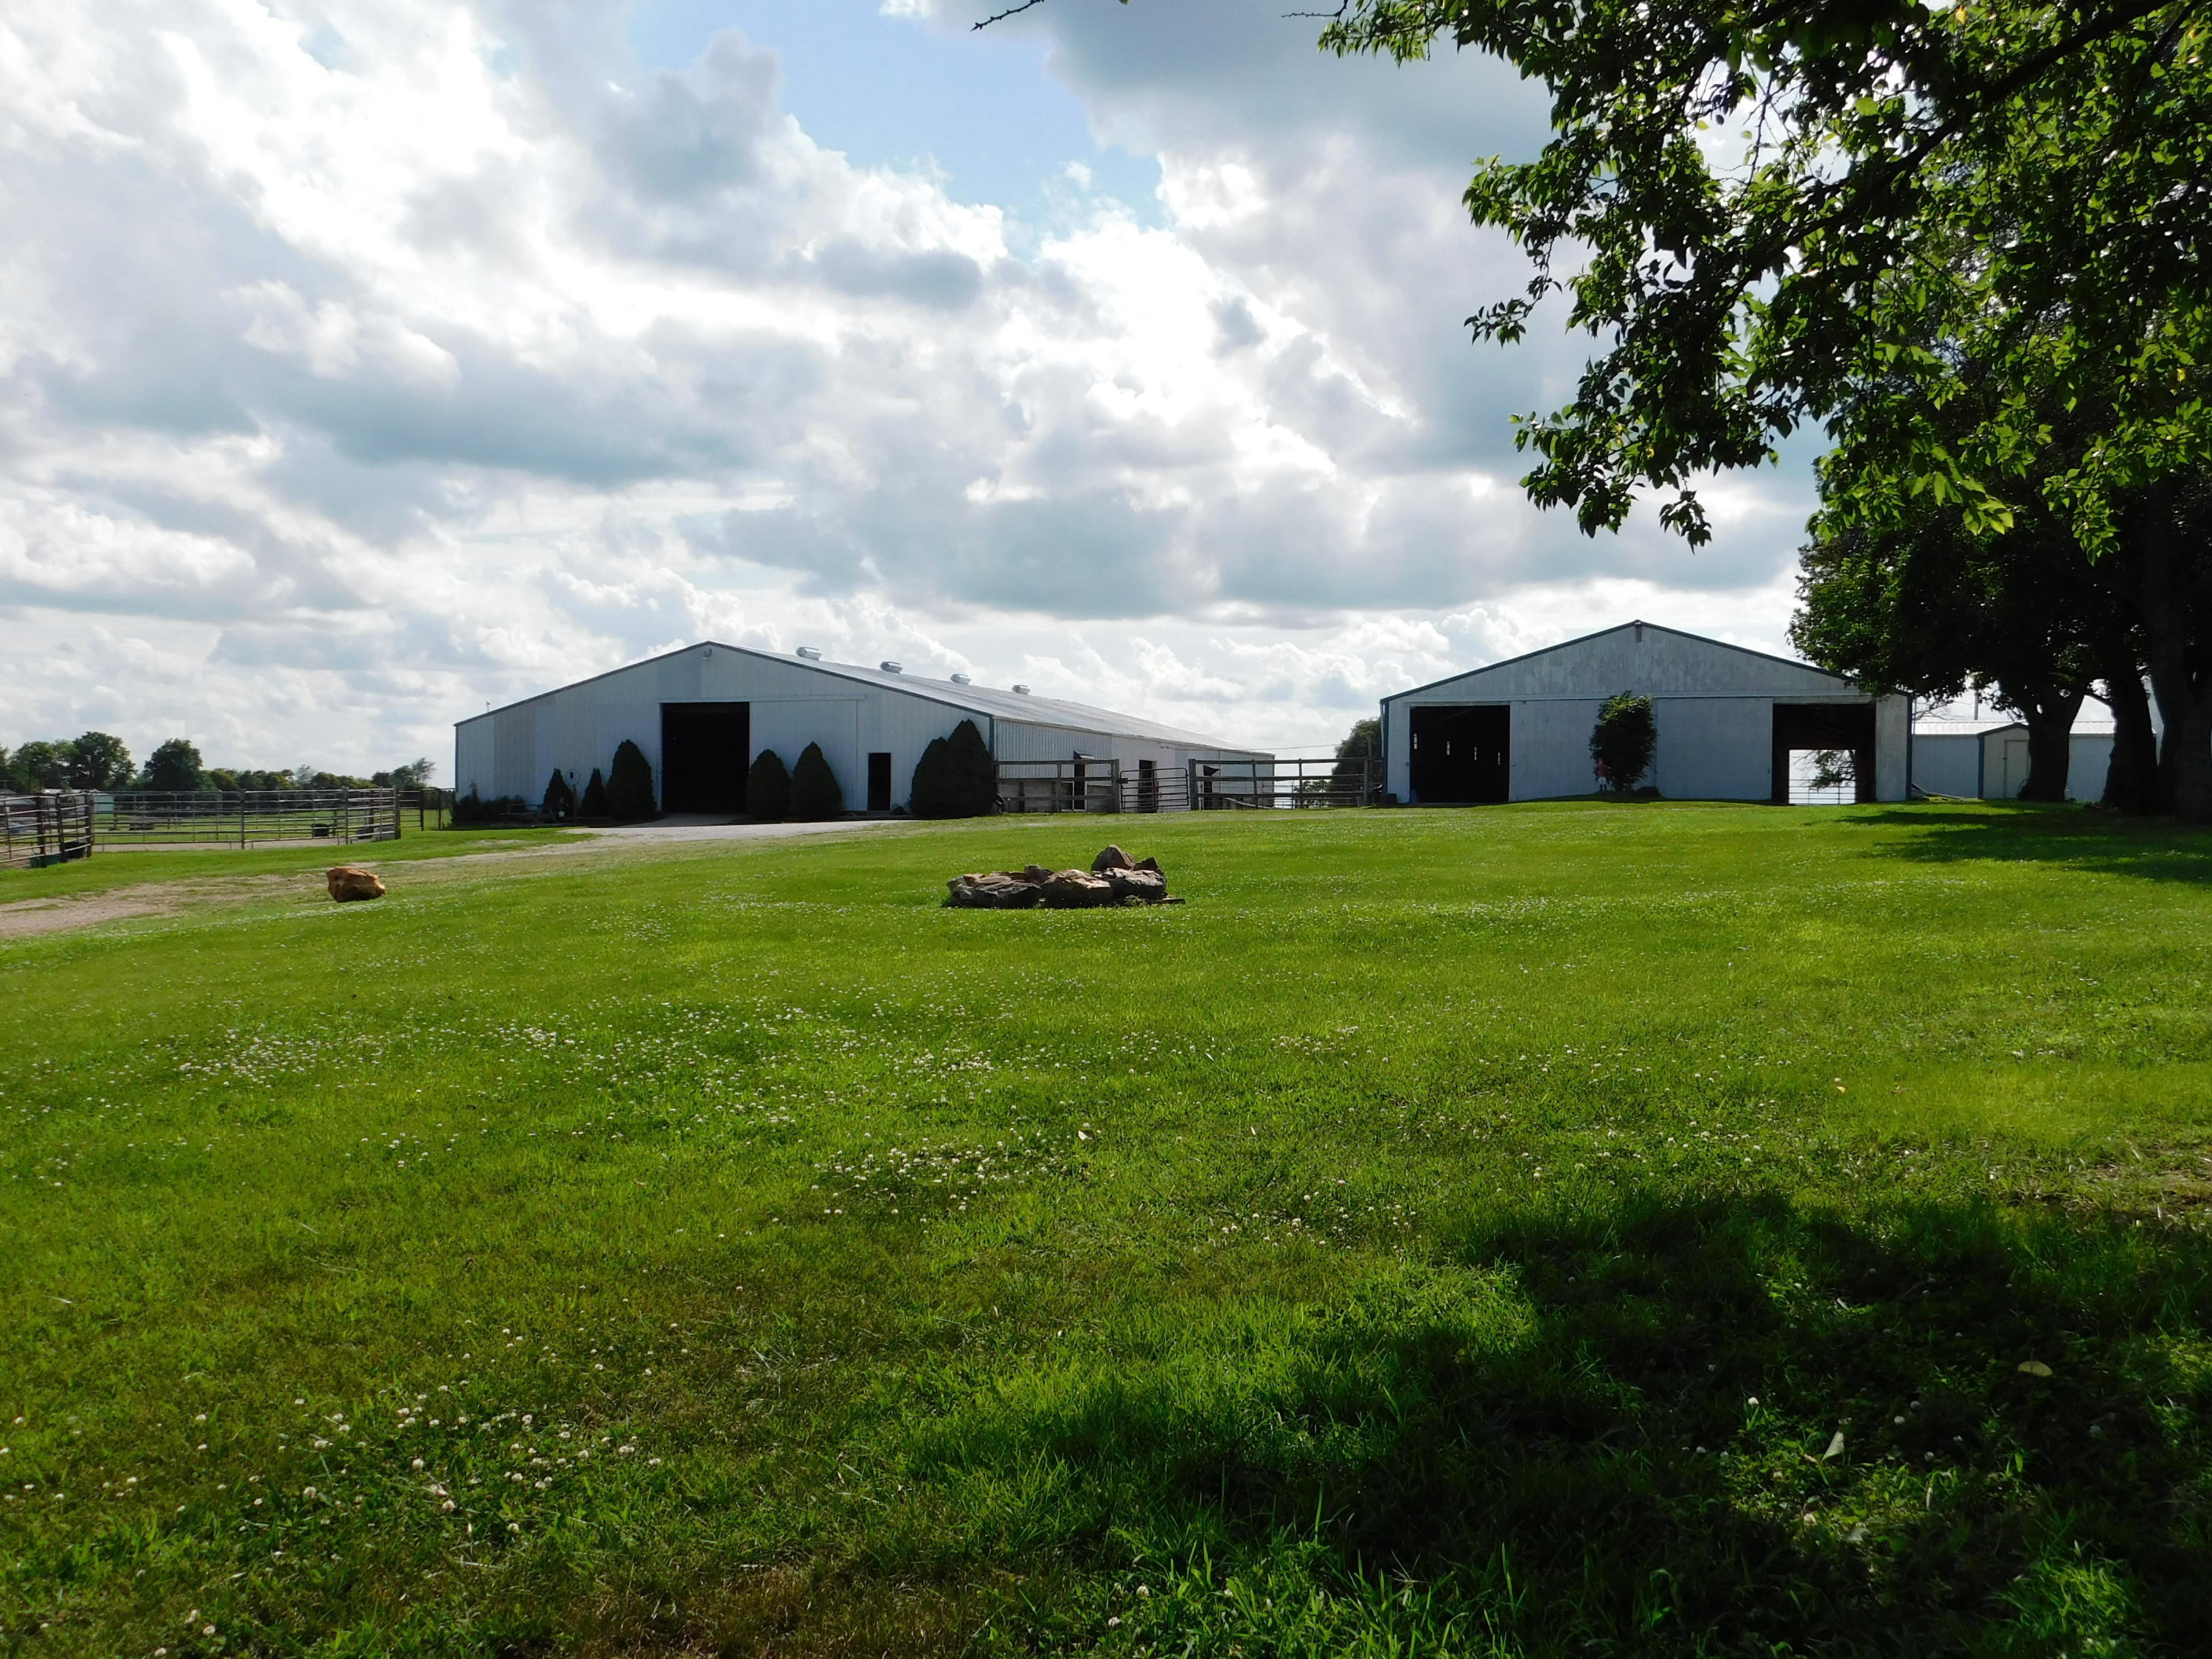 1590 West State Highway 174 Republic, MO 65738